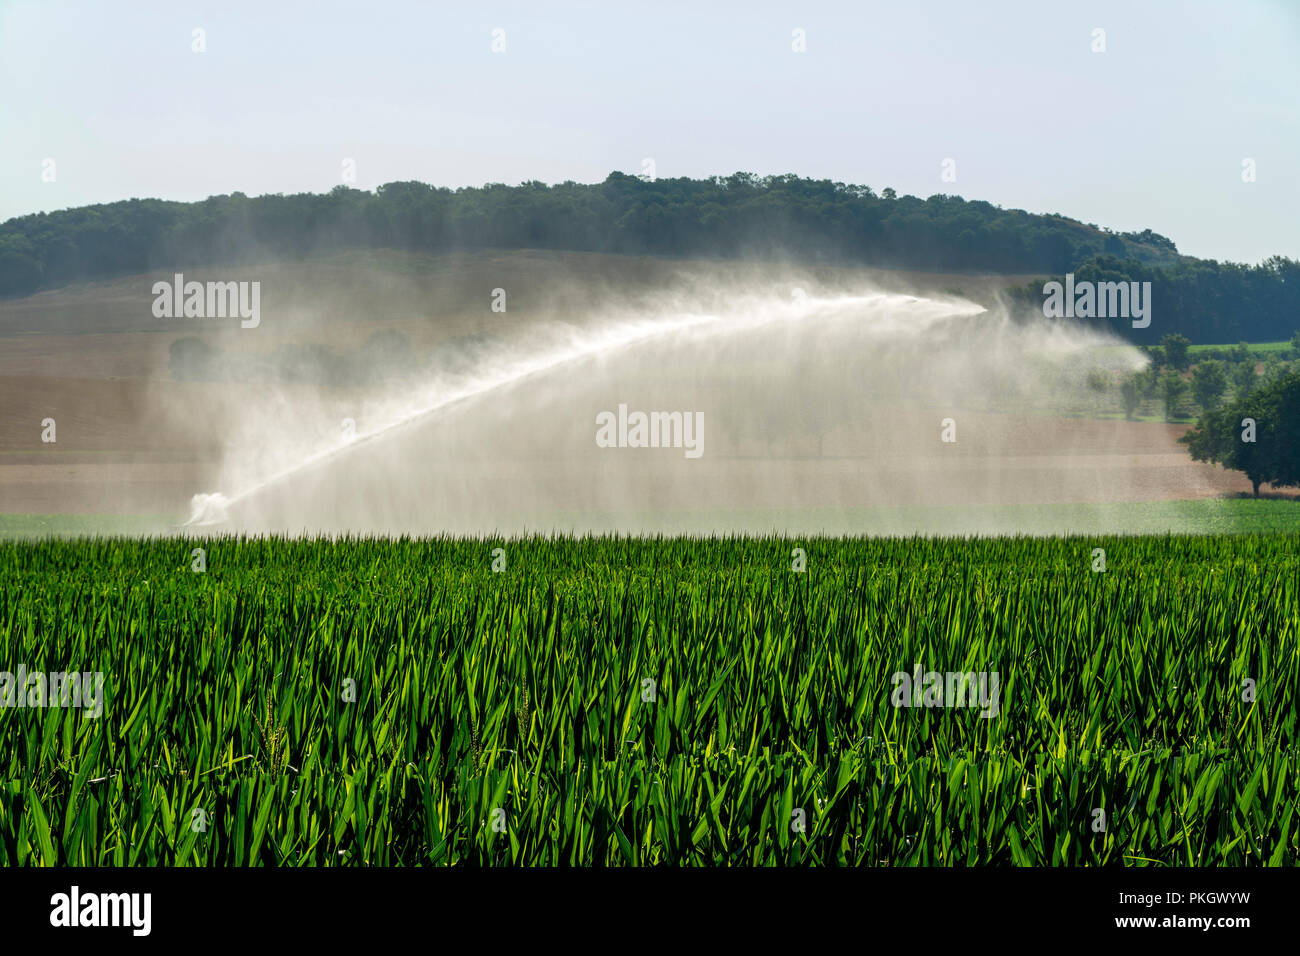 Watering in a field of wheat, Limagne plain, Puy de Dome department, Auvergne Rhone Alpes, France, Europe - Stock Image